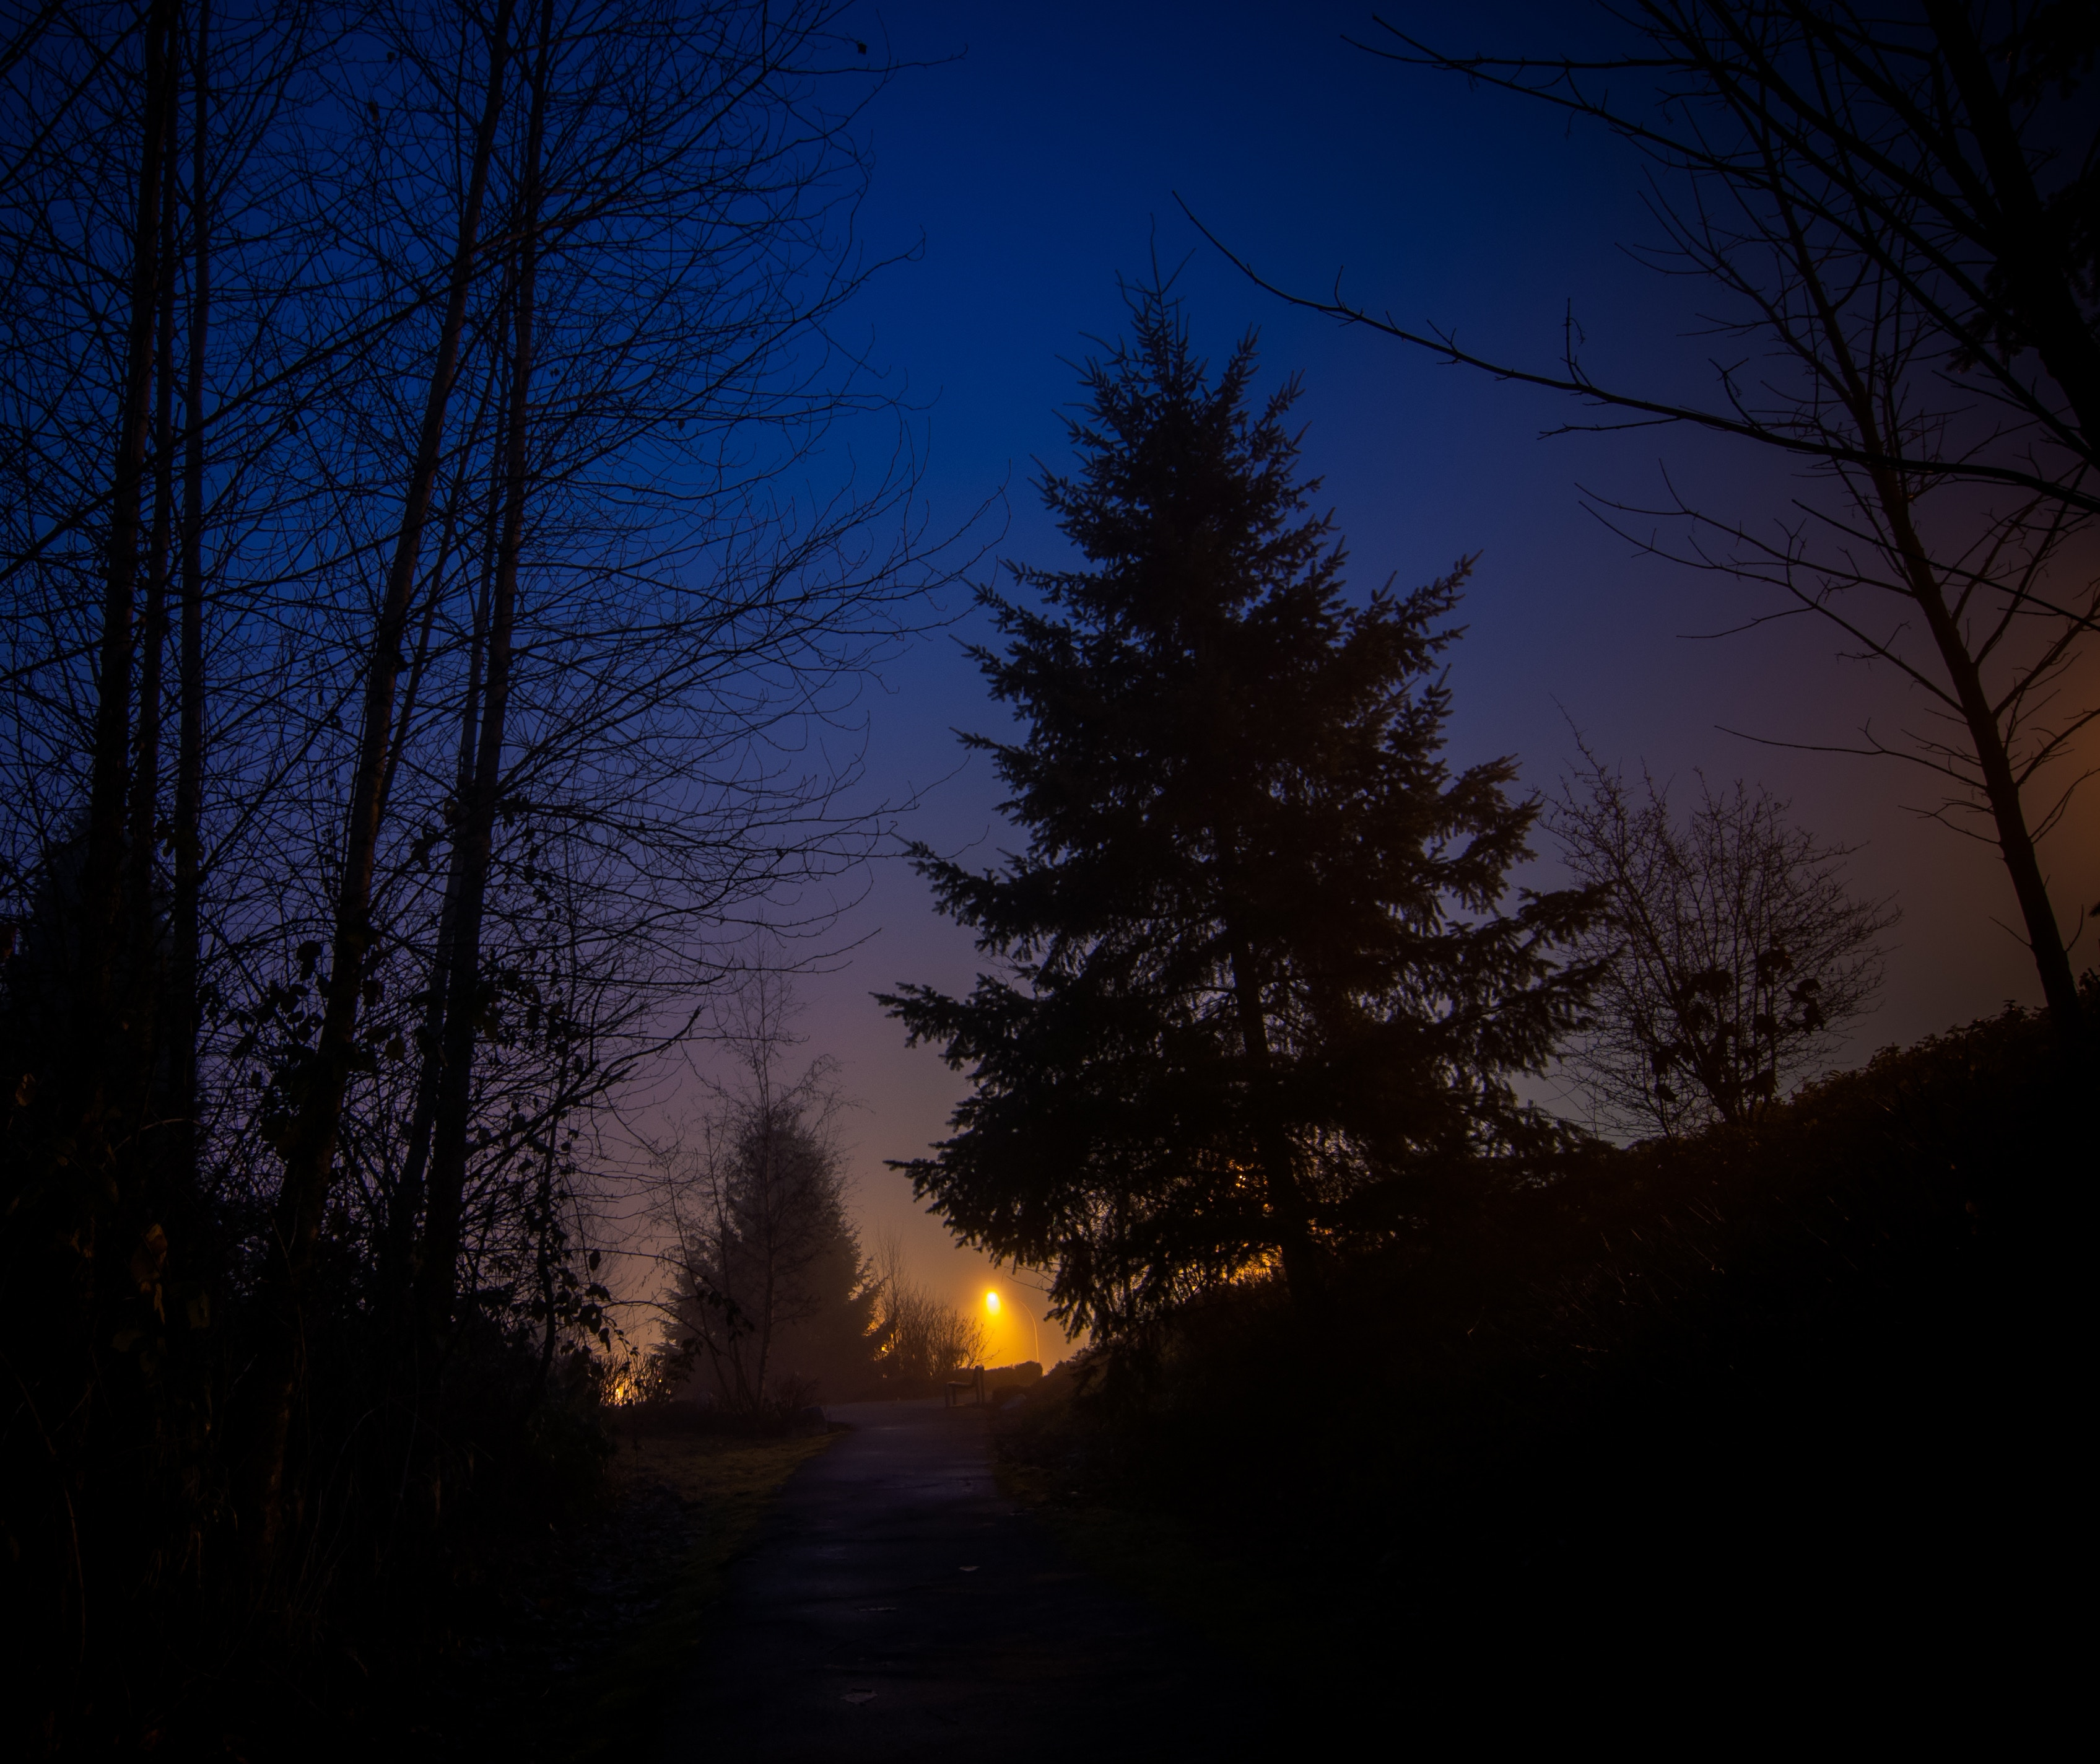 71011 free wallpaper 1080x2340 for phone, download images Trees, Sky, Night, Dark, Forest, Fog 1080x2340 for mobile